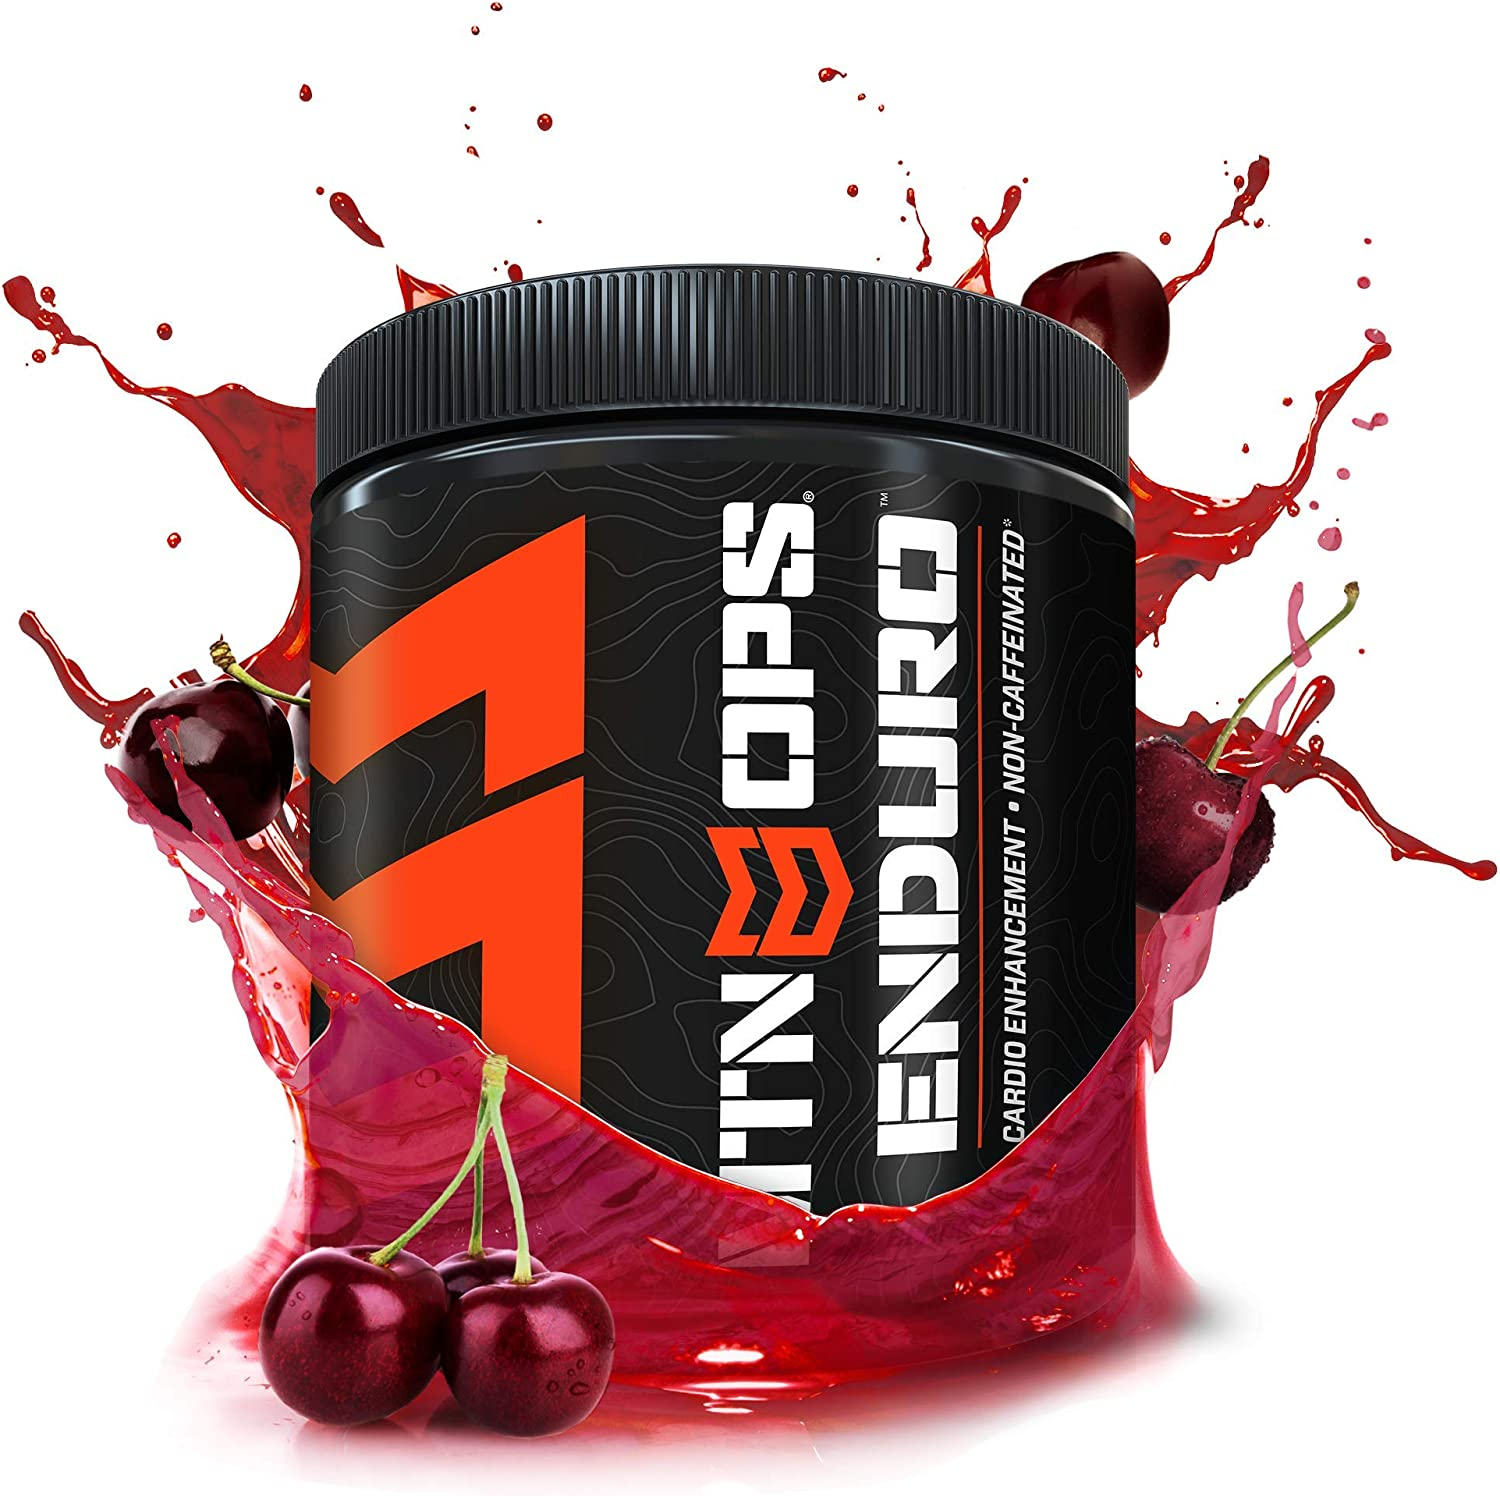 MTN OPS Enduro Cardio Energy Enhancement Supplement, Nitric Oxide Boost No Crash , Black Cherry Flavor, 30 Servings Per Container